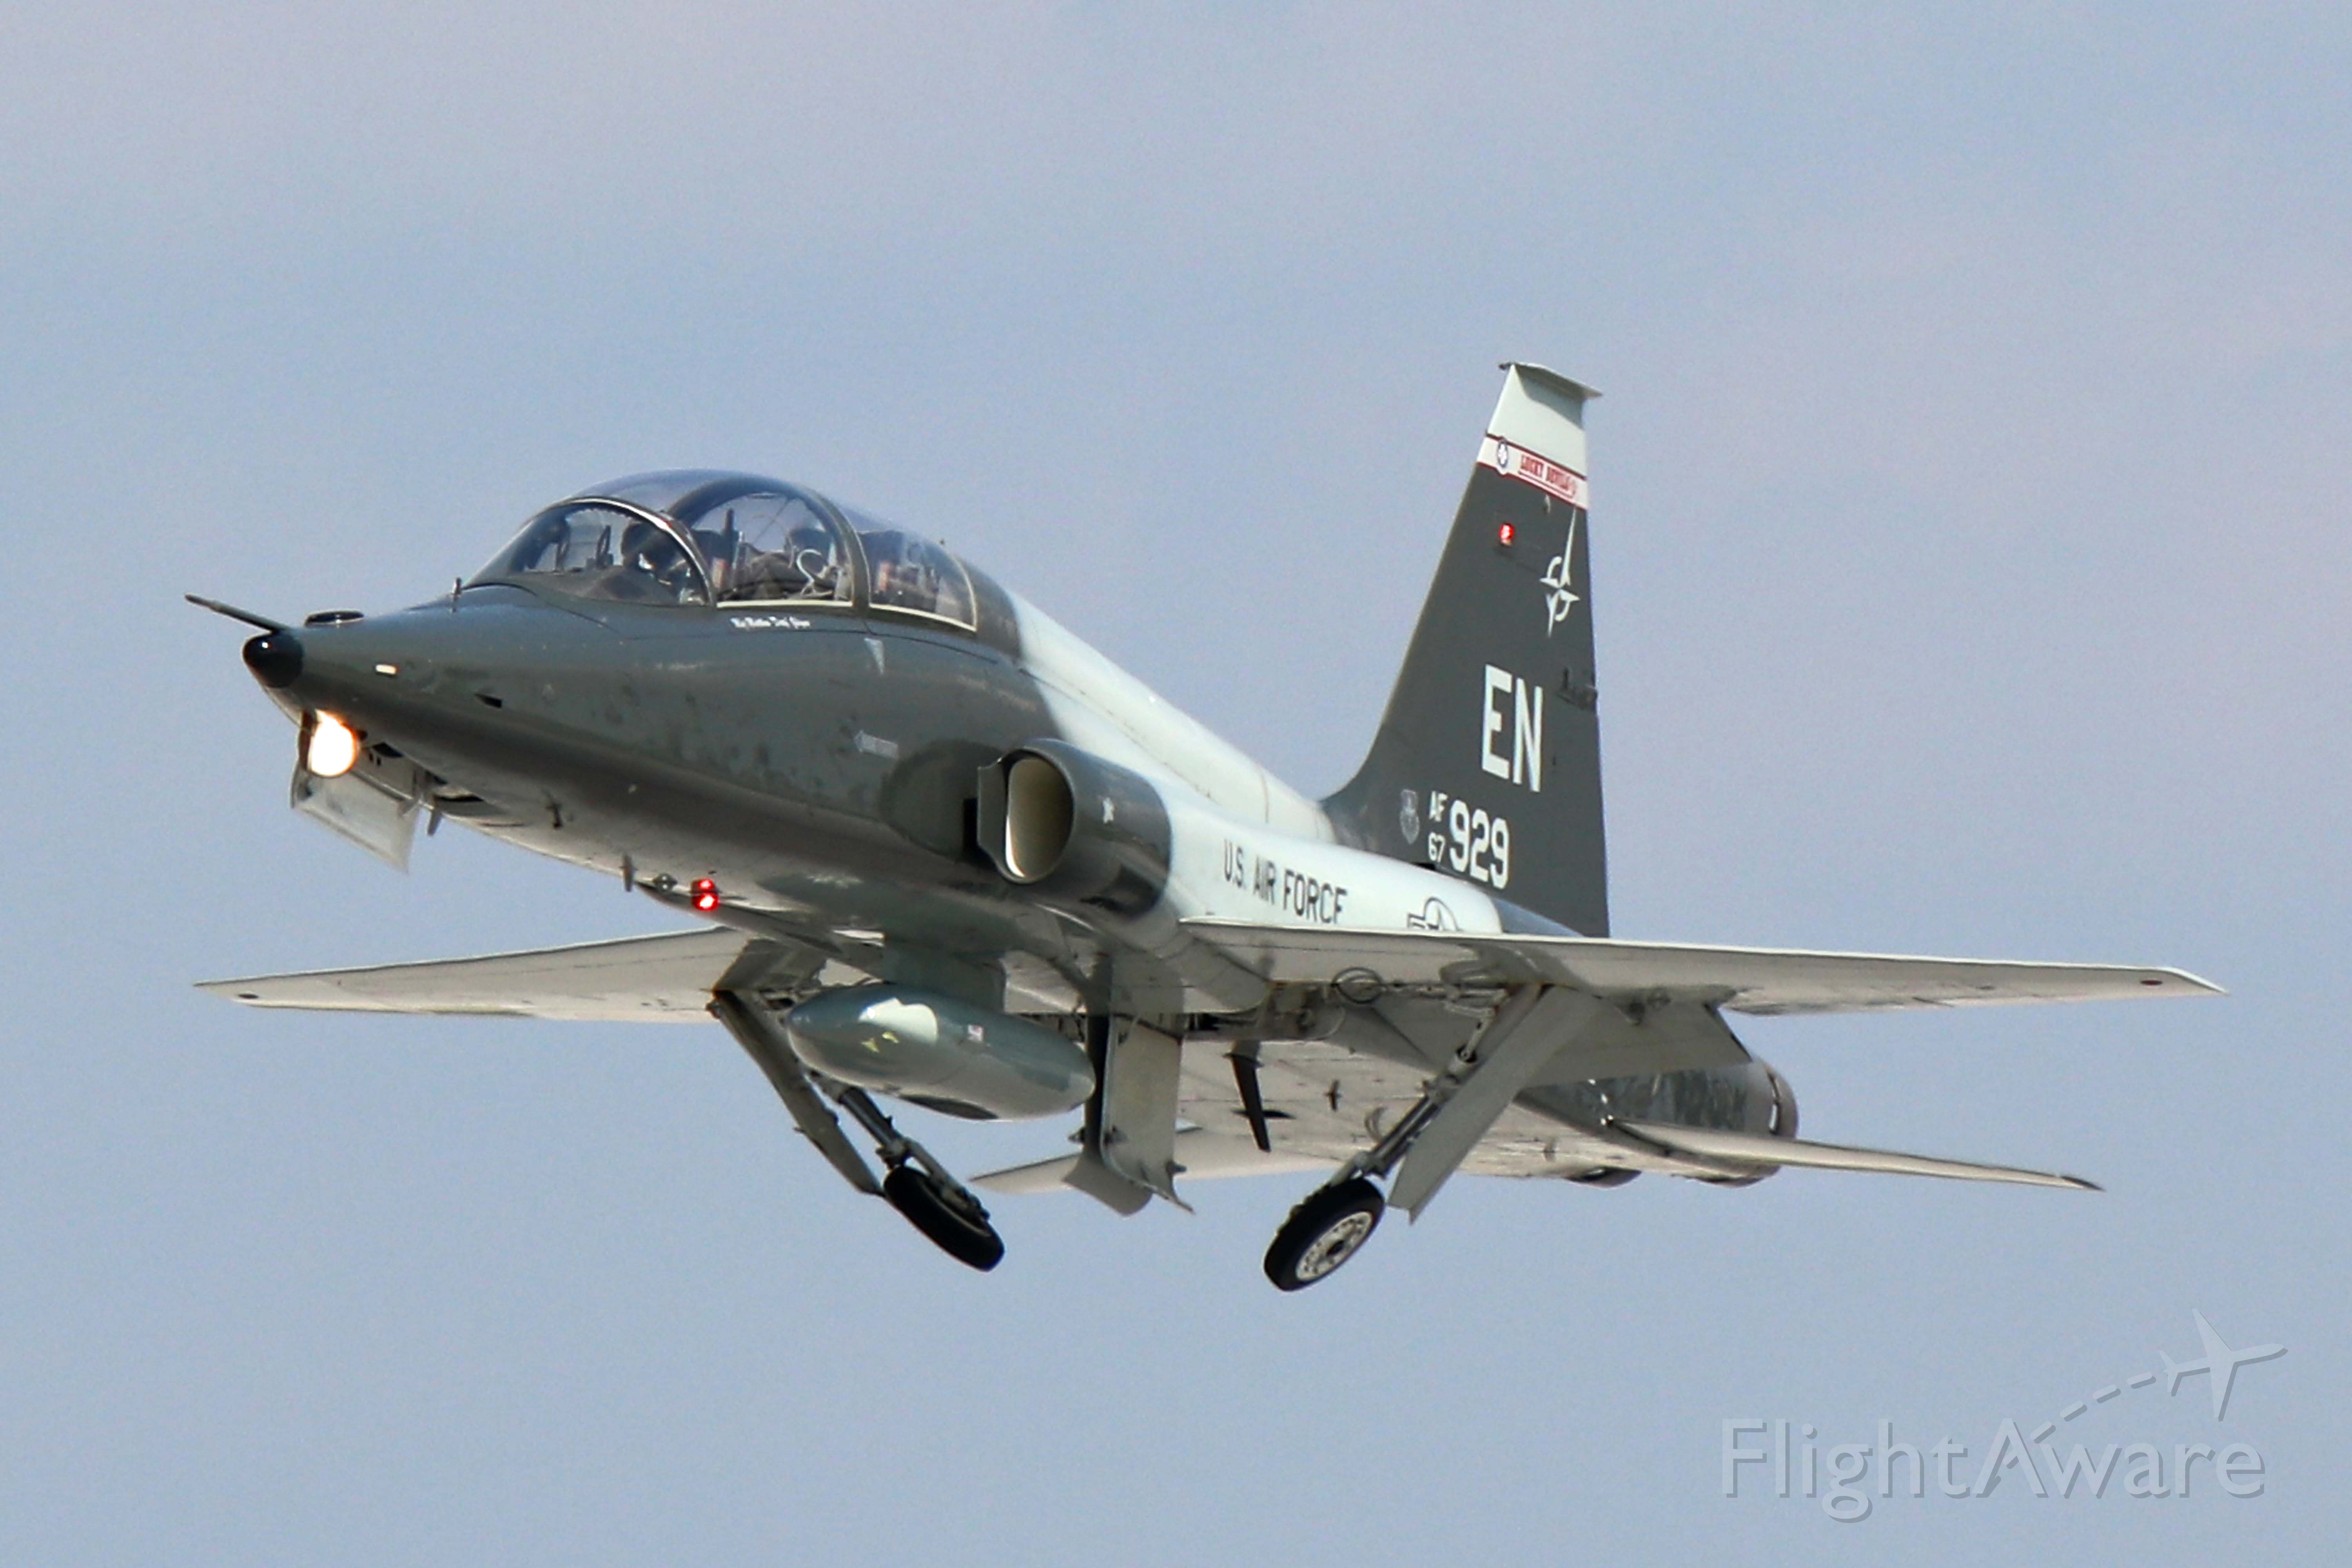 """Northrop T-38 Talon (6714929) - A Northrop T-38C Talon from the 88th Flying Training Squadron (88 FTS) """"Luky Devils"""", 80th Operations Group, Sheppard AFB, TX adeparting Toledo on Friday 13 Sep 2019.."""